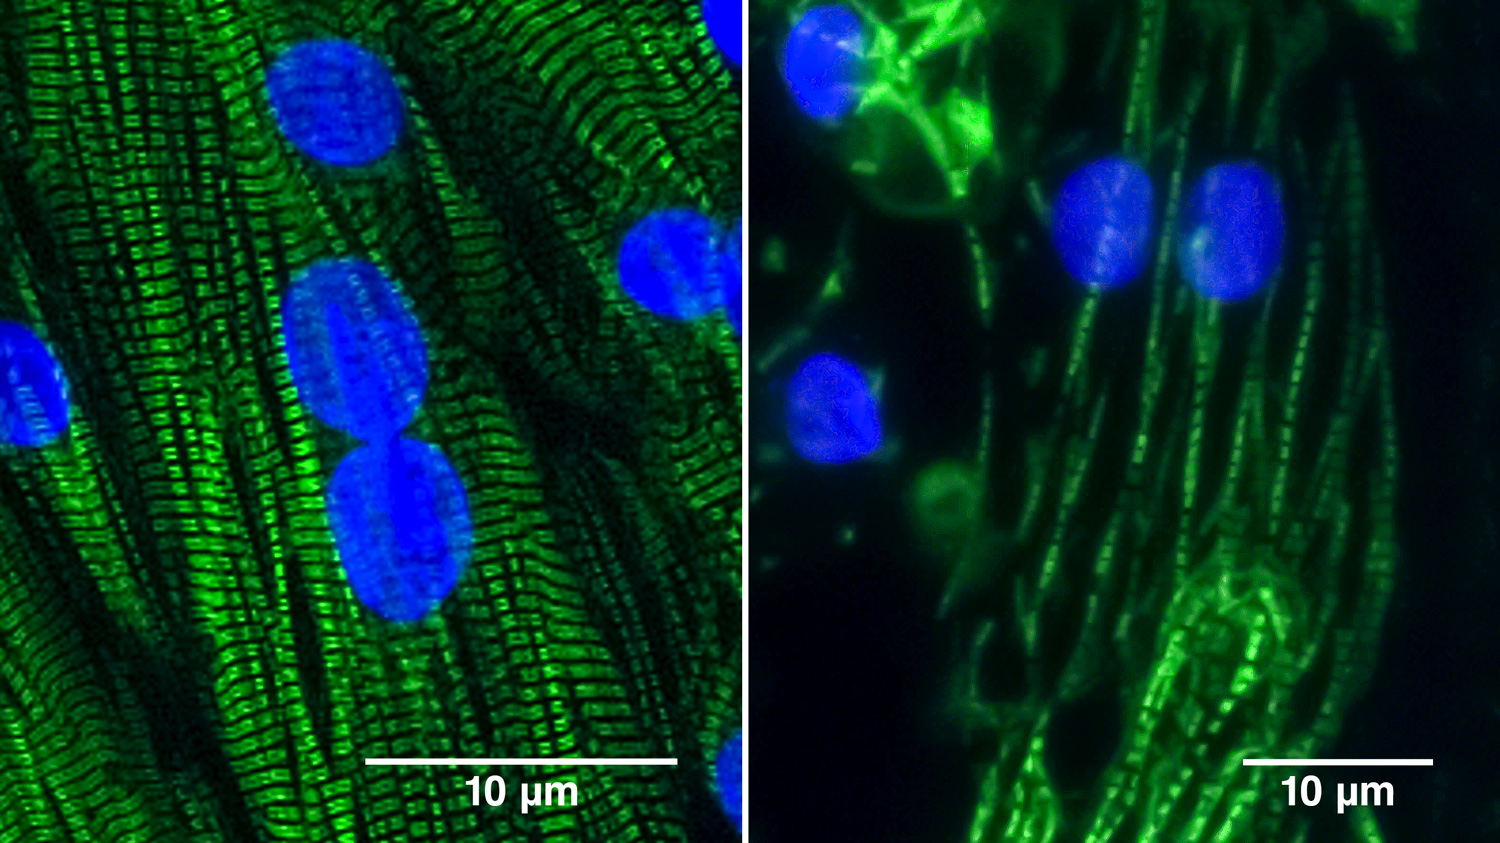 Two images showing heart muscle cells derived from normal human iPS cells, showing the difference between cells lacking the BAG3 protein